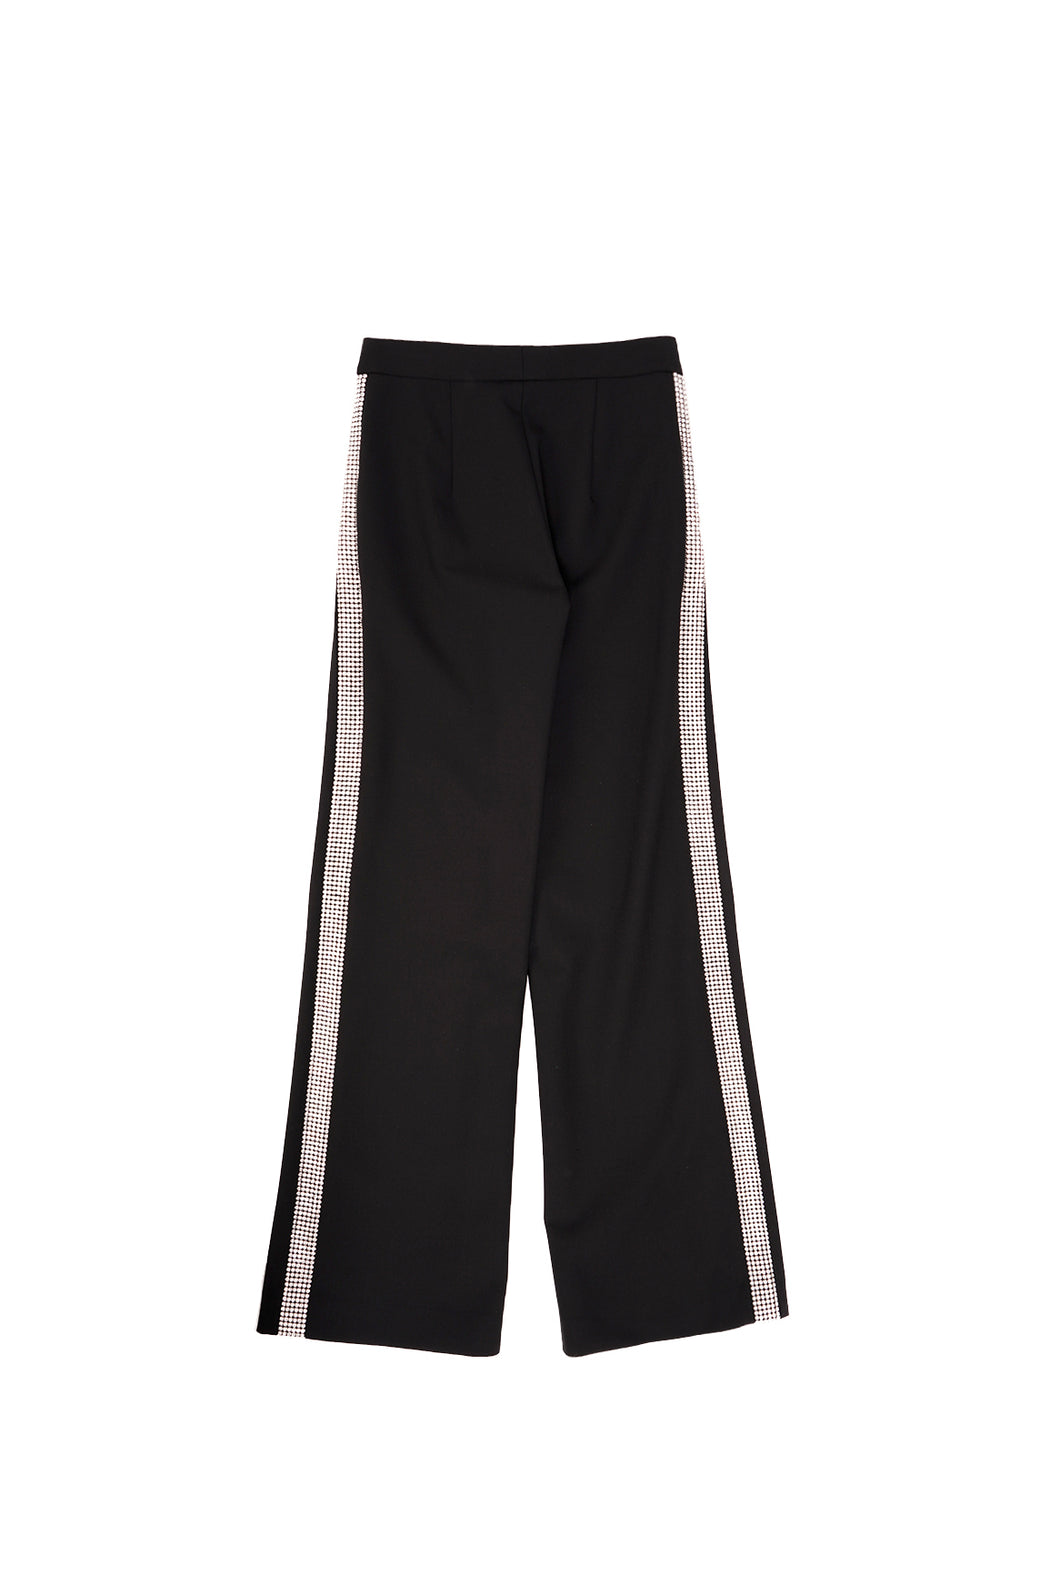 Crystal Stripe Wide Leg Trouser - Black